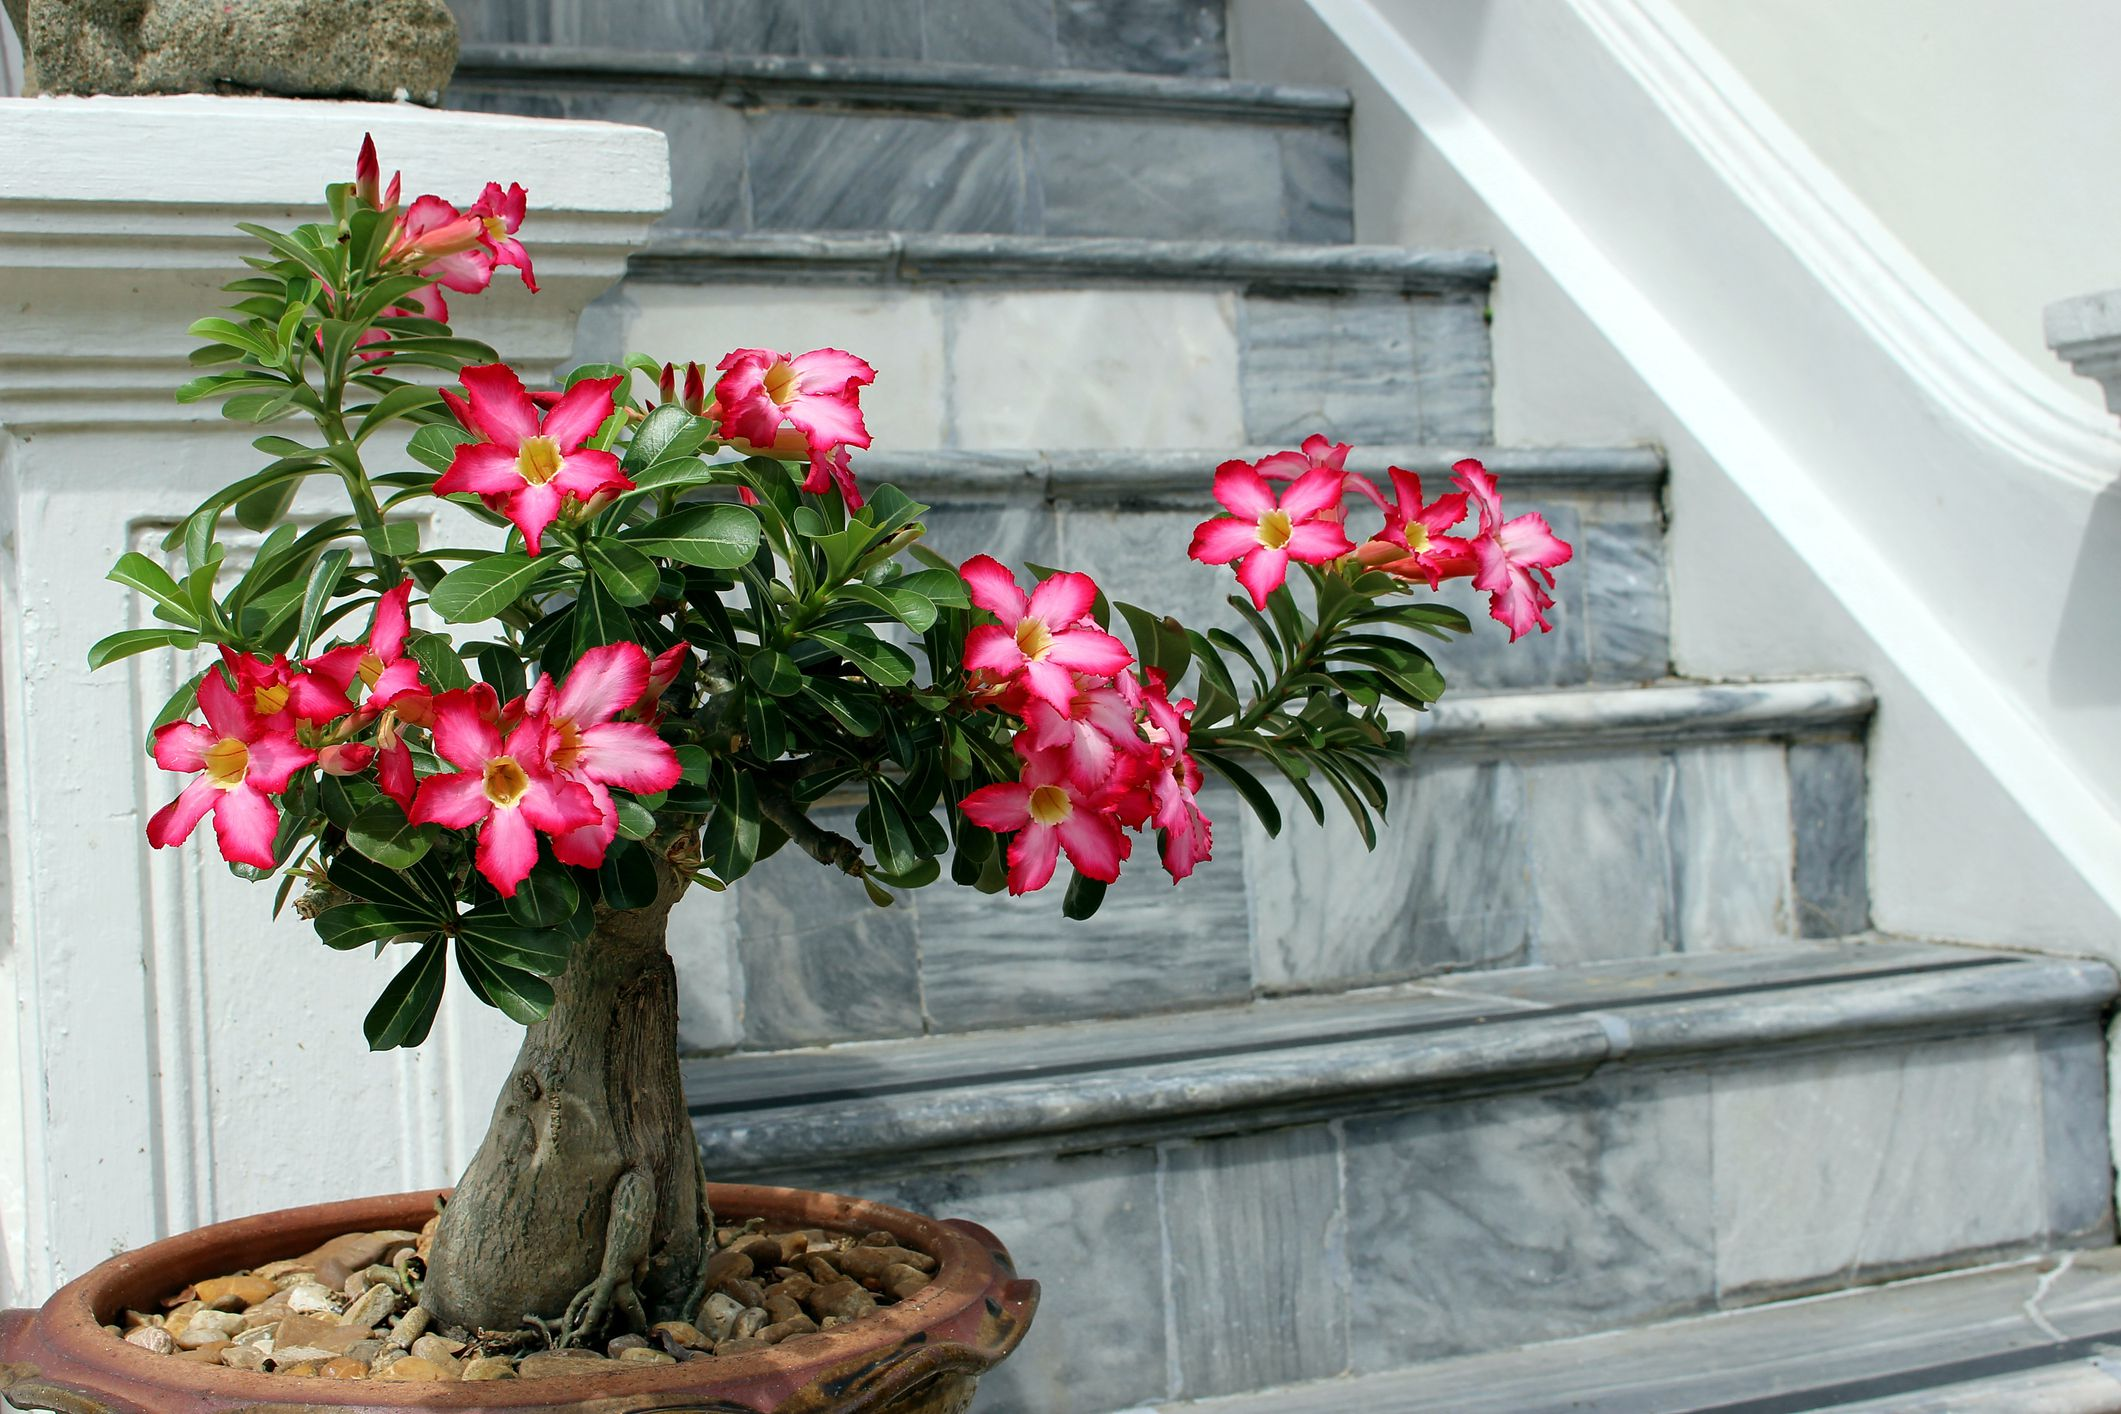 9 unusual houseplants to grow 7 uncommon indoor plants